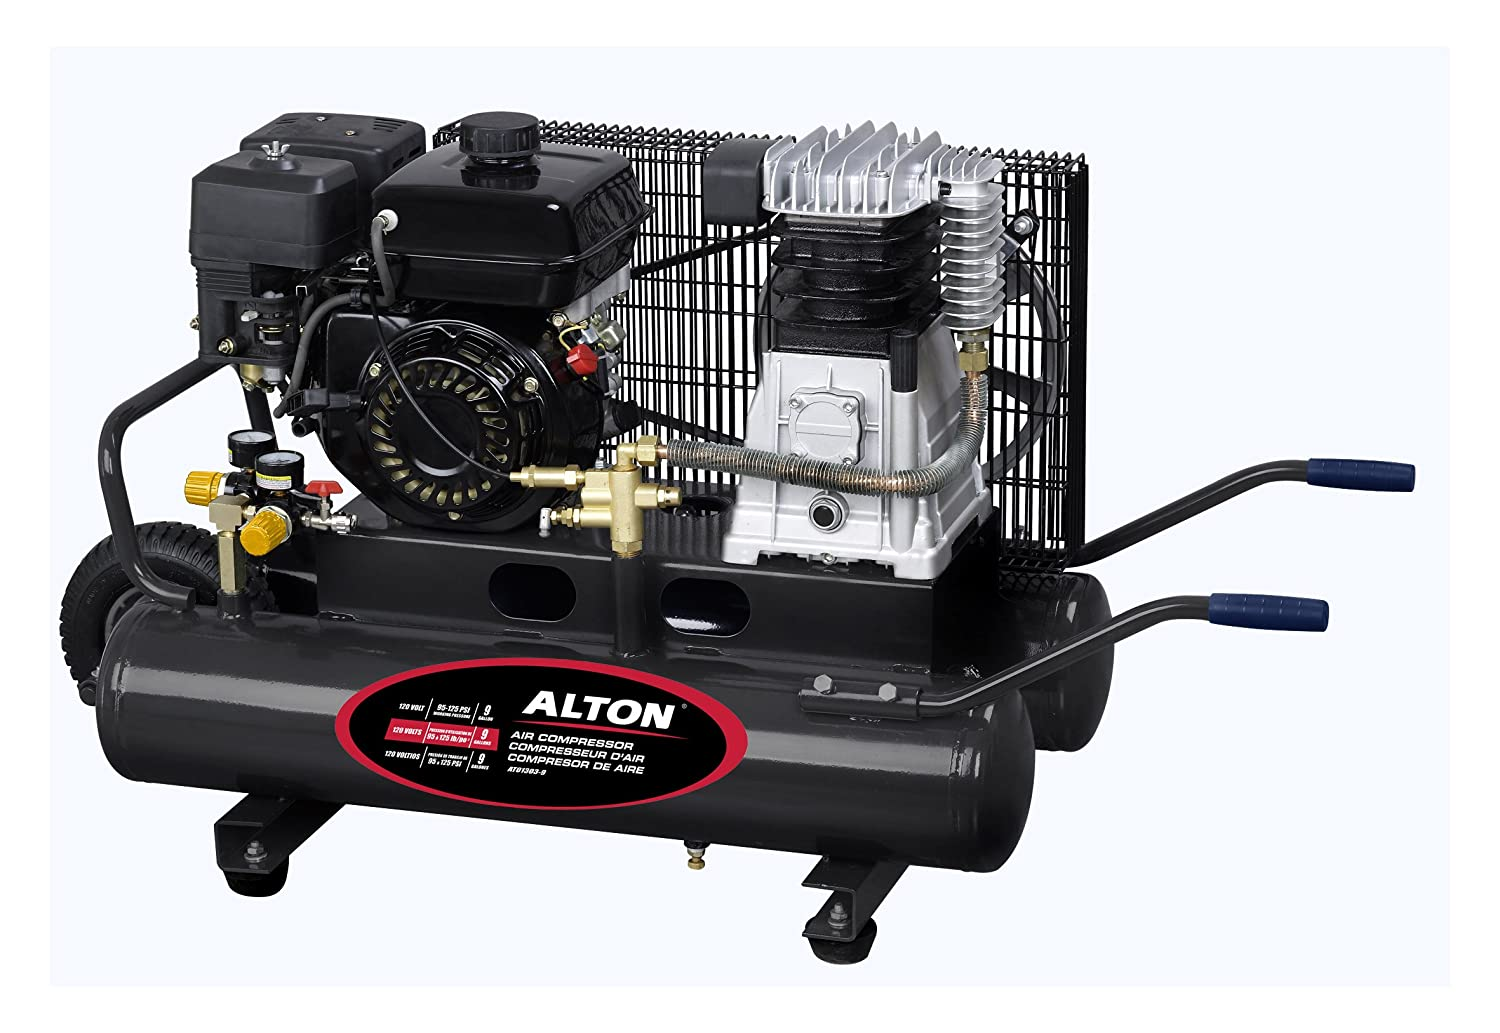 Alton AT01303-9L 6.5HP 9-Gallon Wheelbarrow Compressor - Air Compressors - Amazon.com